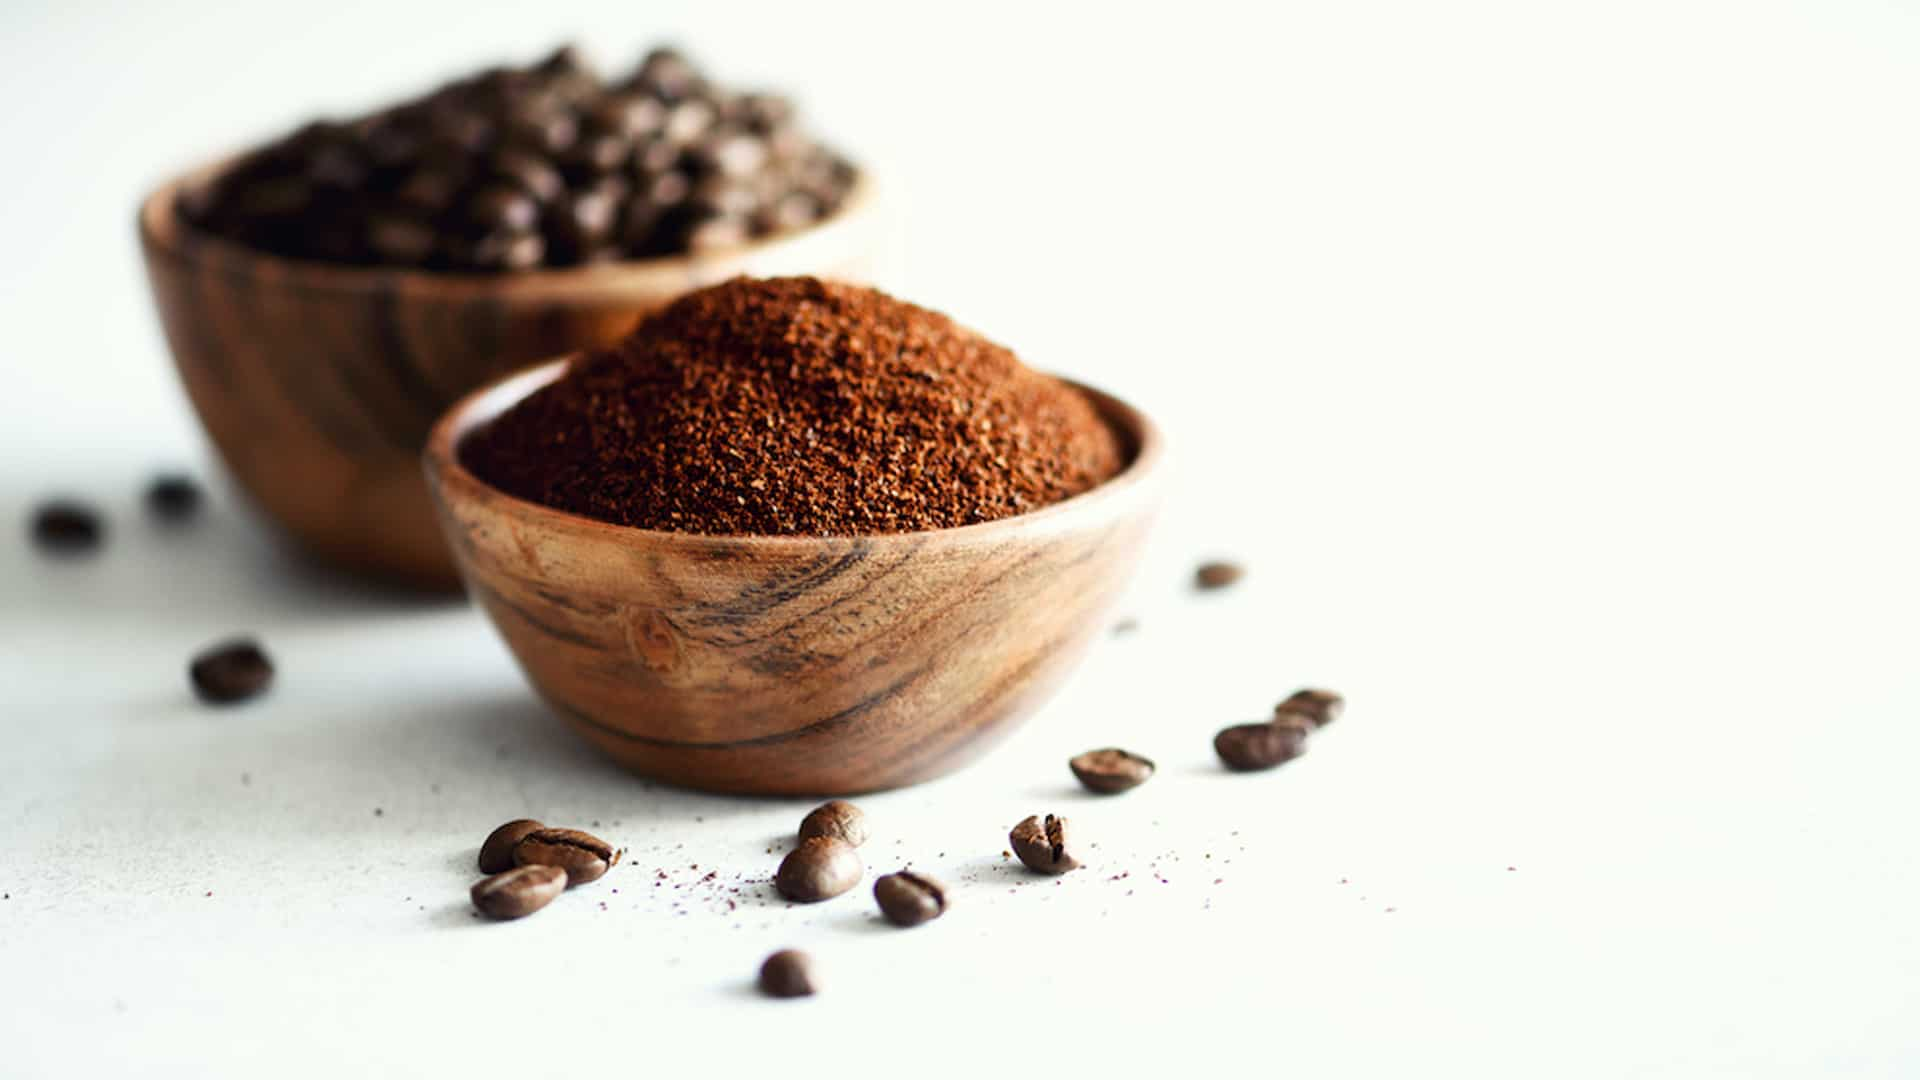 how much coffee grounds to use